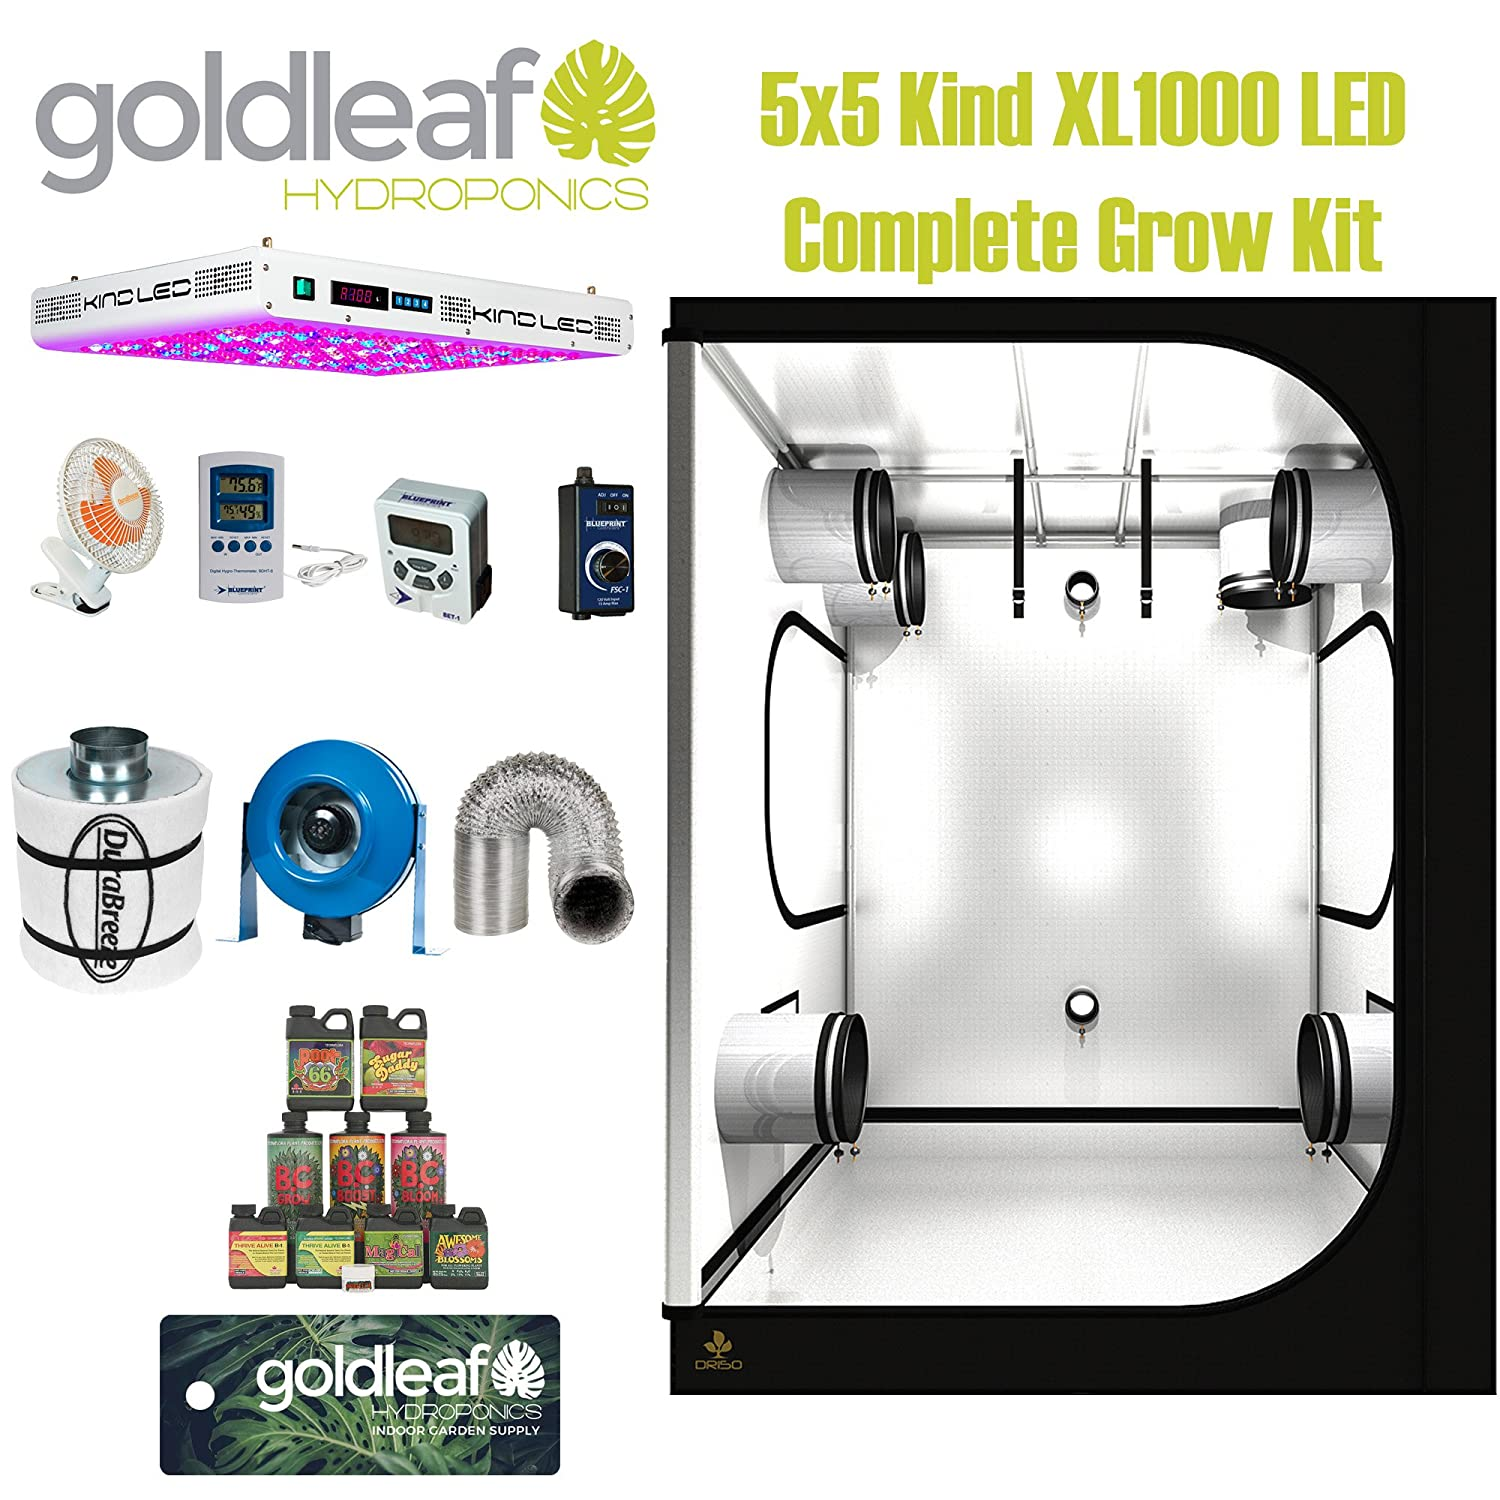 KIND LED XL1000 LED Complete 5x5 Grow Tent Kit with carbon filter and duct fan